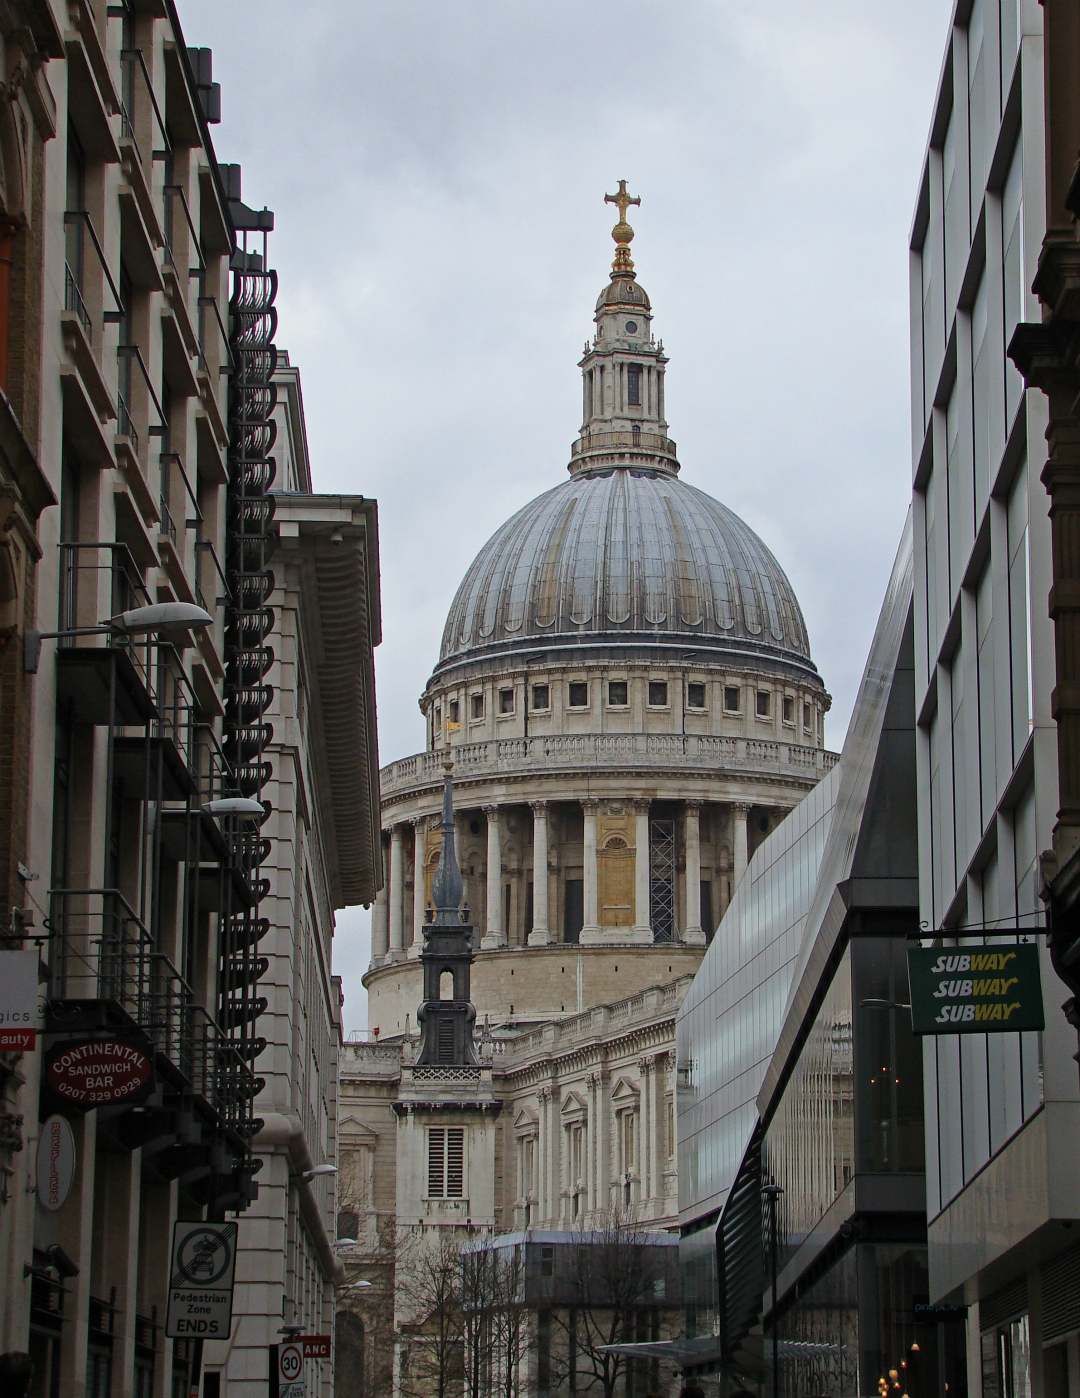 St Paul's Cathedral, London, photographed on 24 February 2014